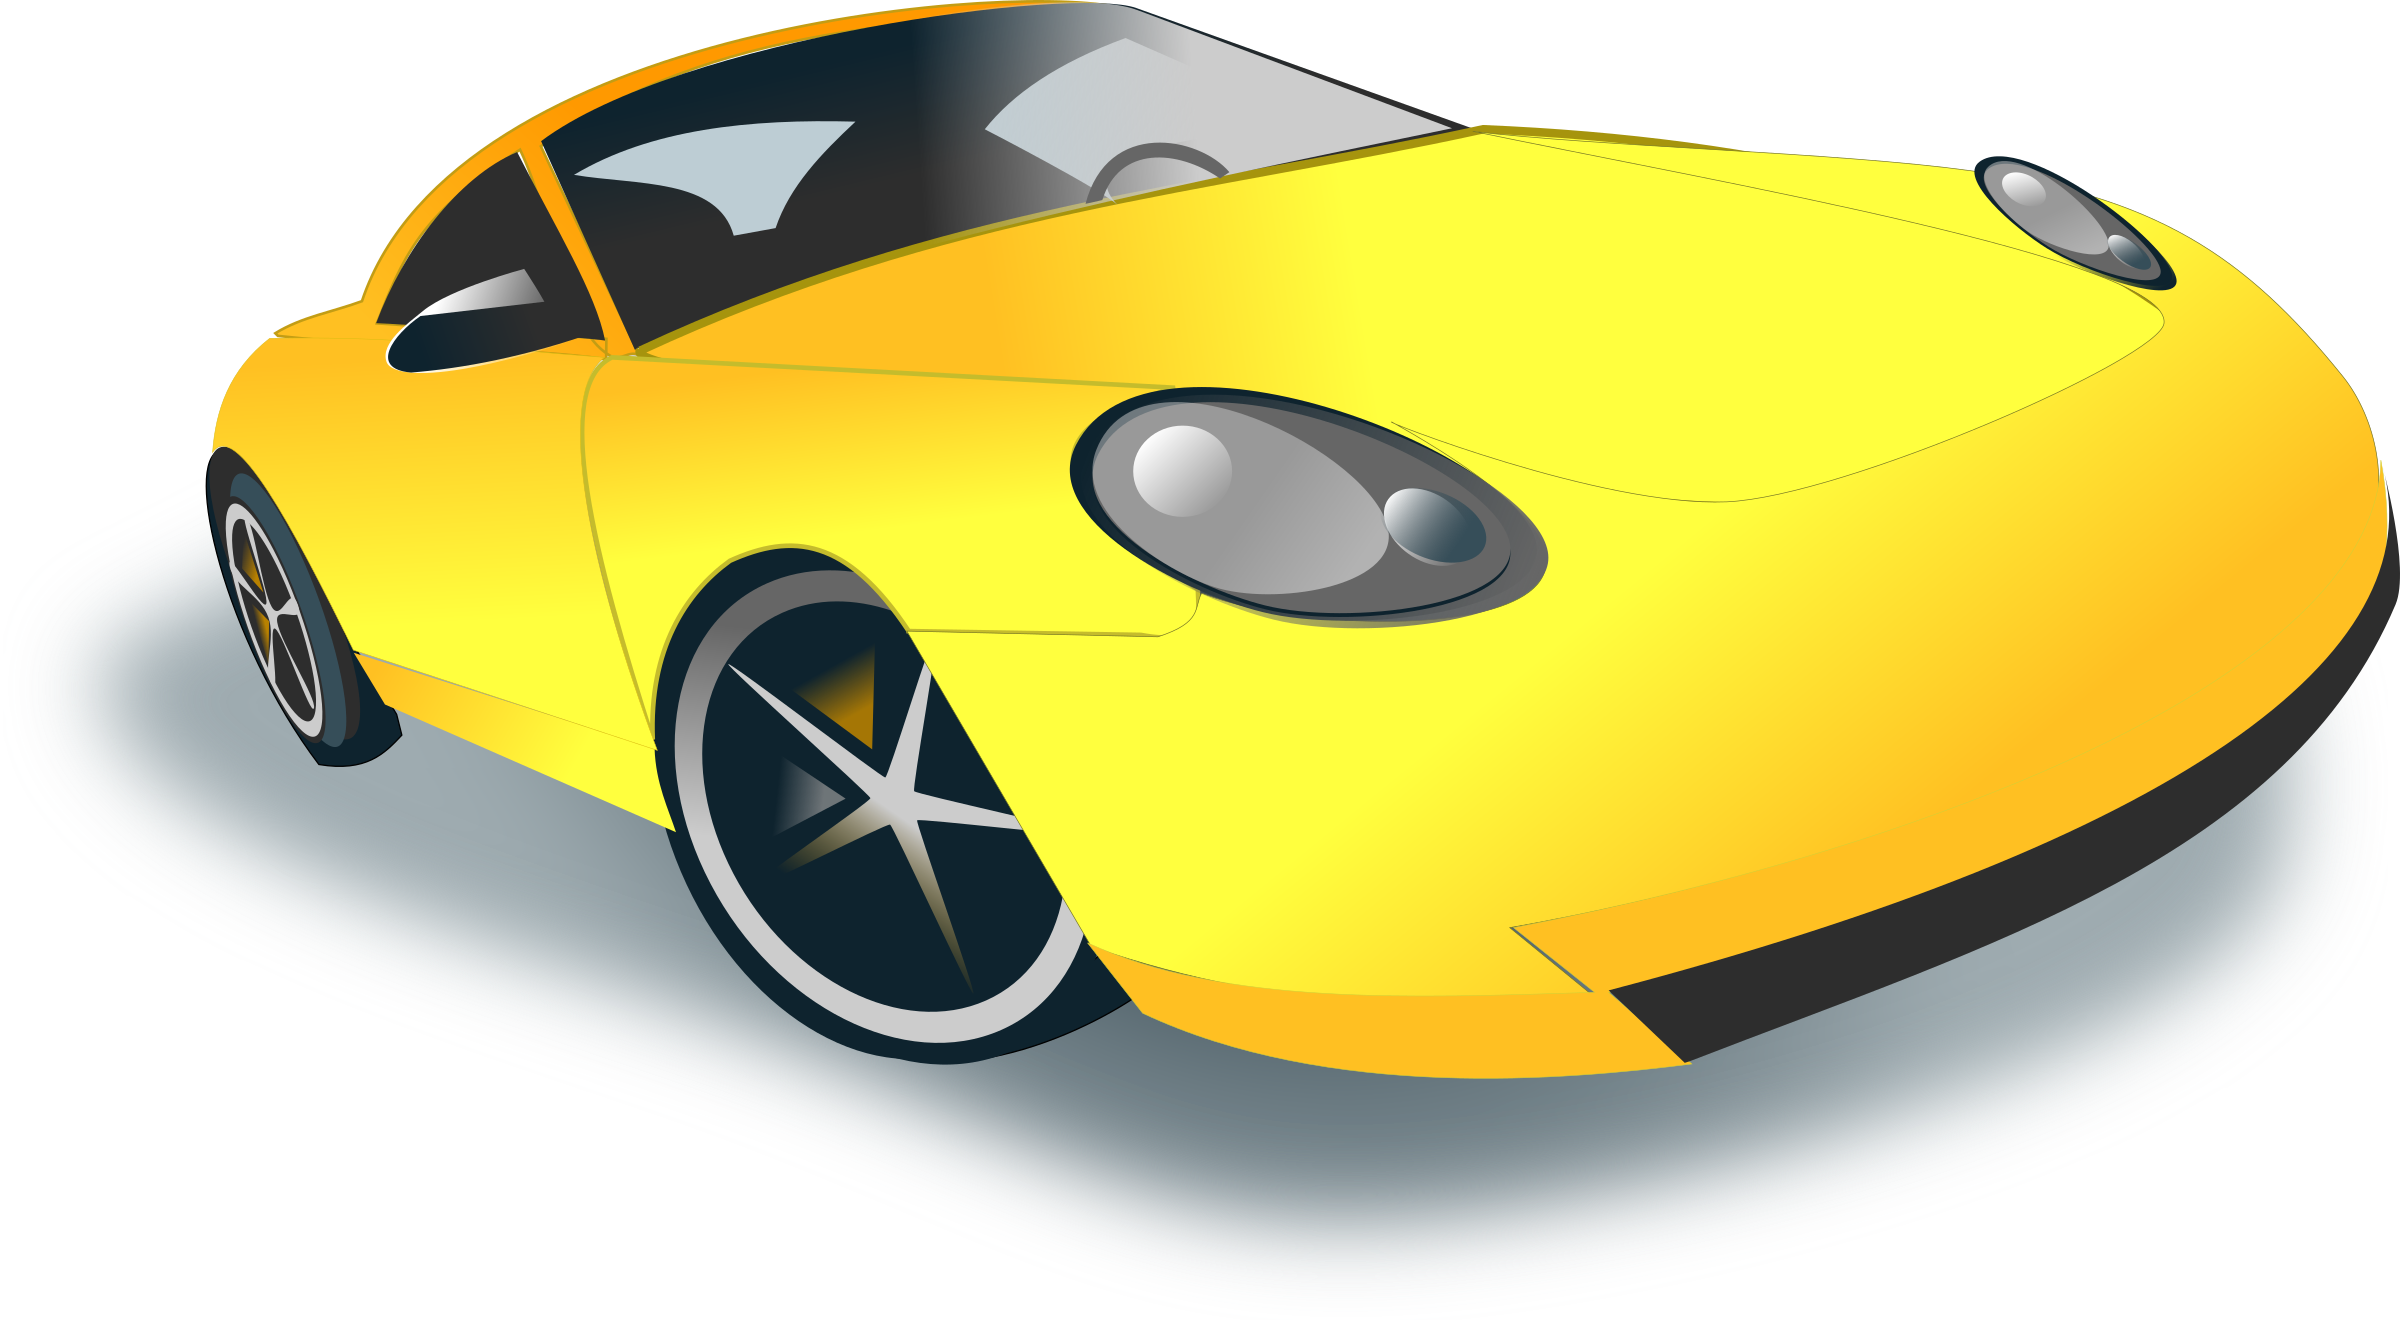 Car with hood open clipart image royalty free Clipart - sports car image royalty free